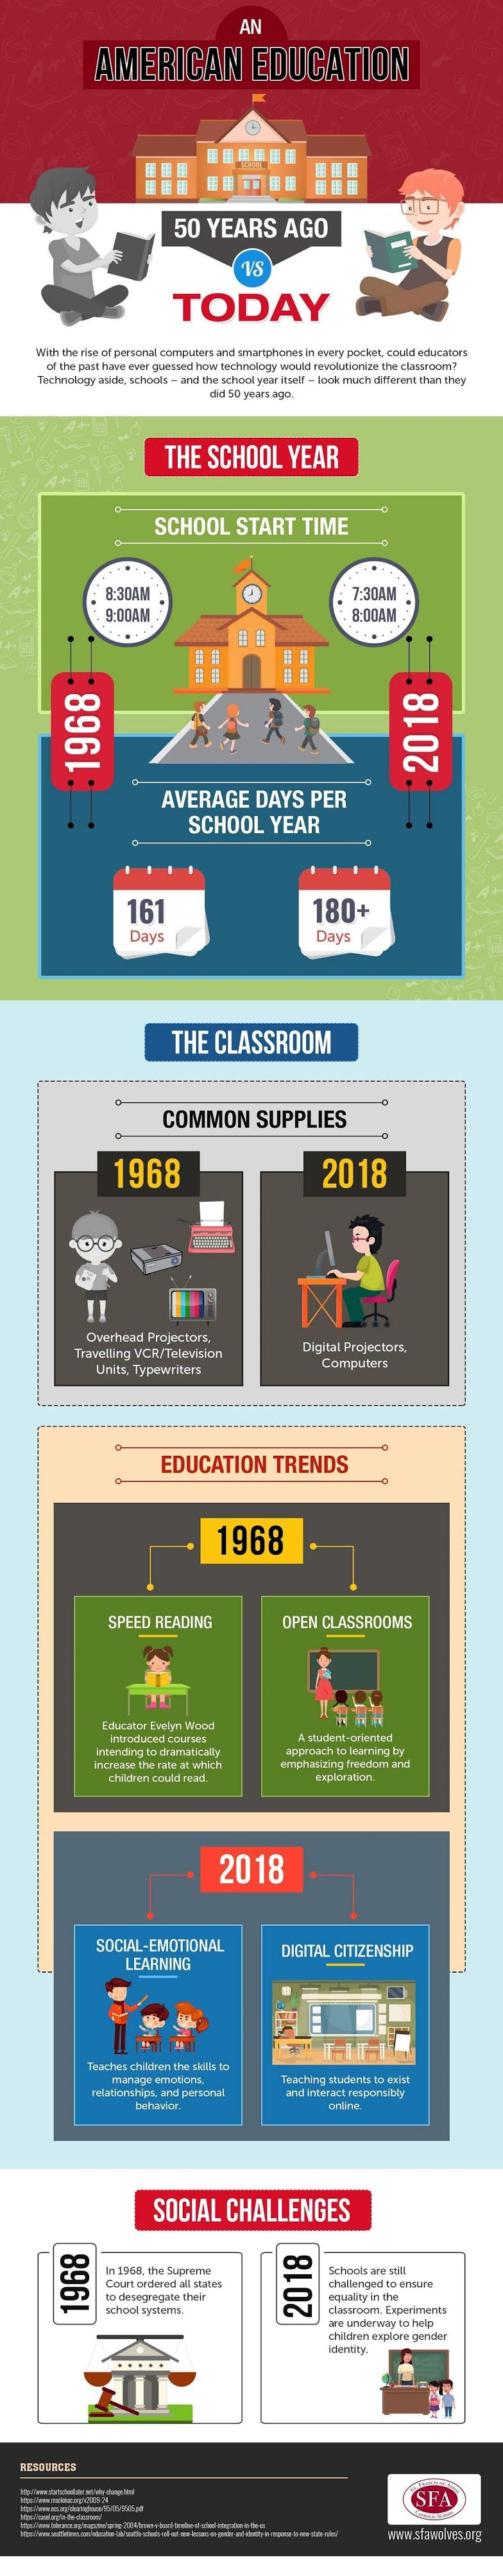 An American Education 50 Years Ago vs Today #infographic